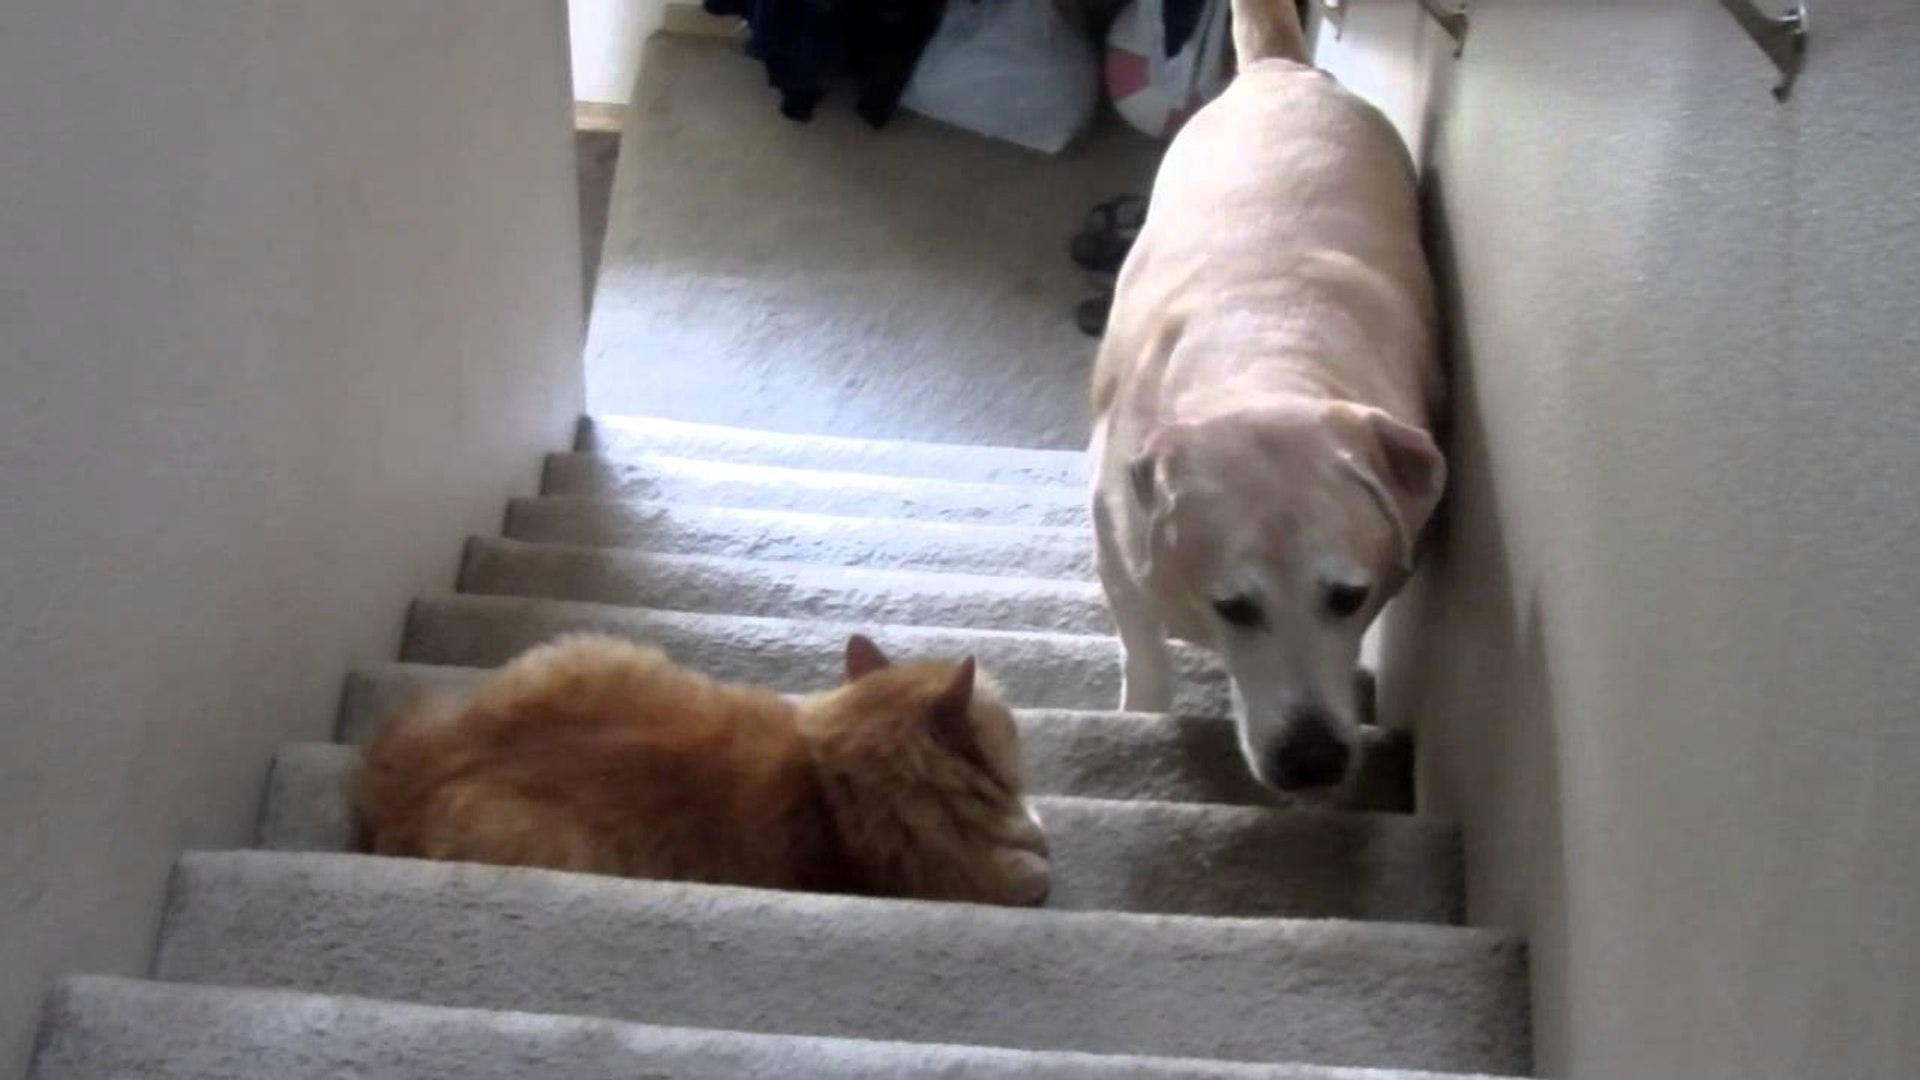 Dog Scared Of Cats - Funny Dog and Cat funny cats, cats, dog, dog scared of cat, funny dog and cat,